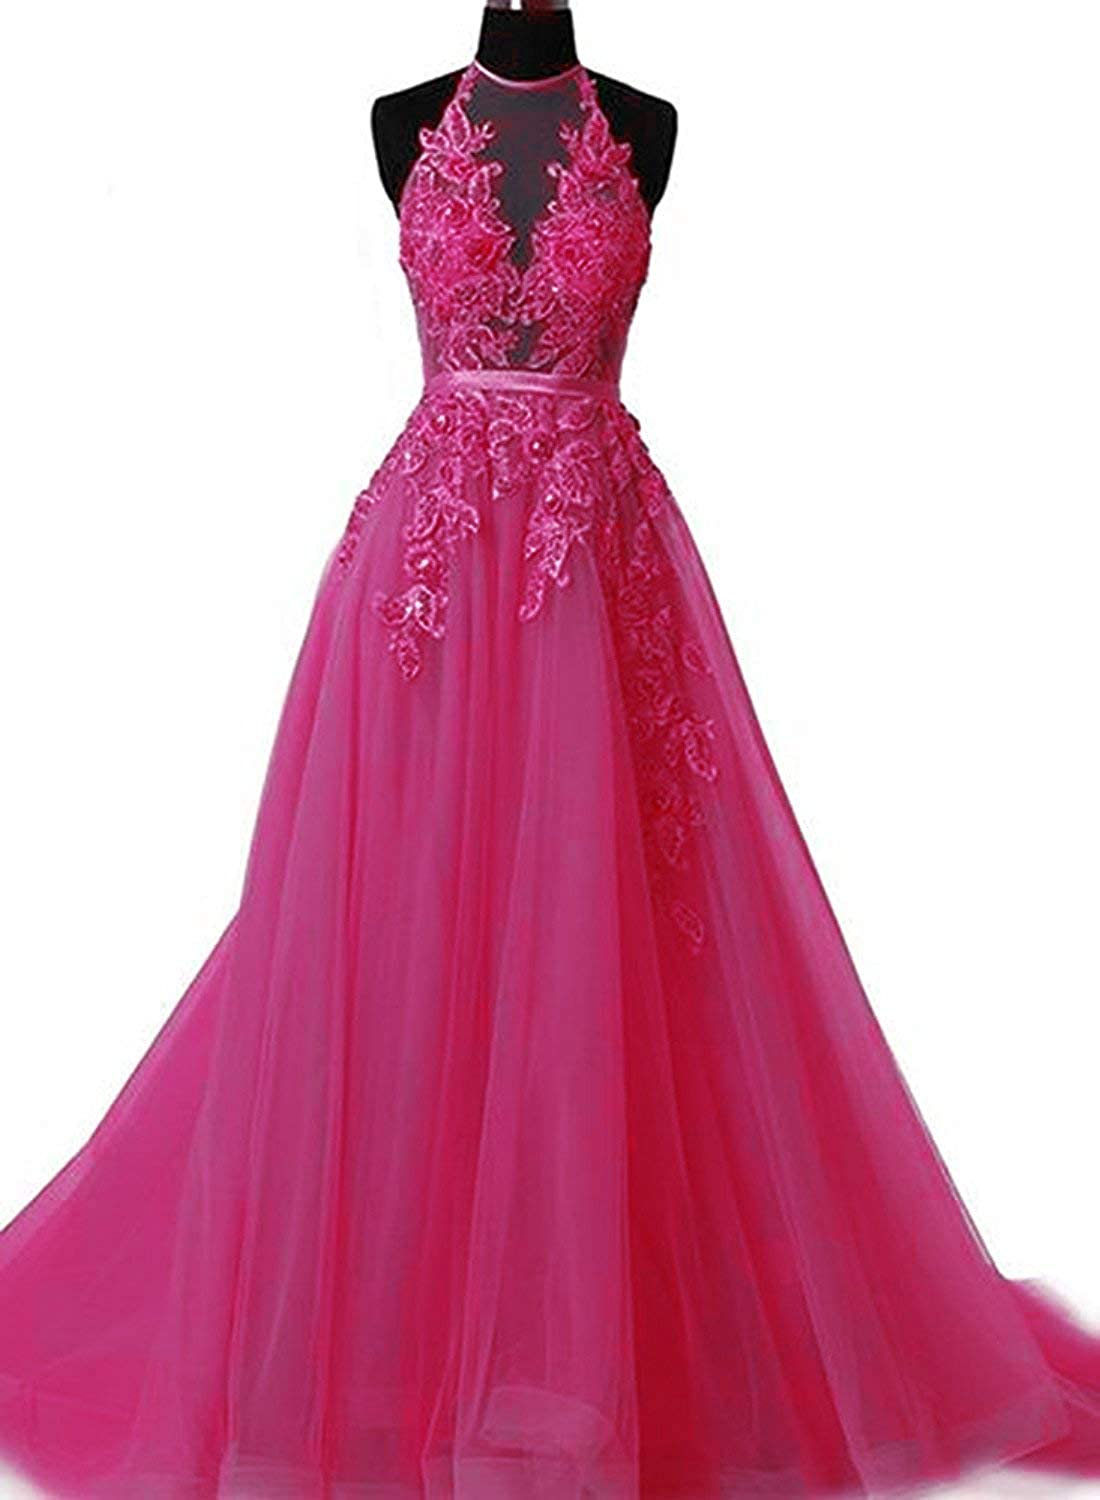 Hot Pink XKYU Women's Lace Appliques Halter Prom Dresses Backless Formal Evening Party Gowns